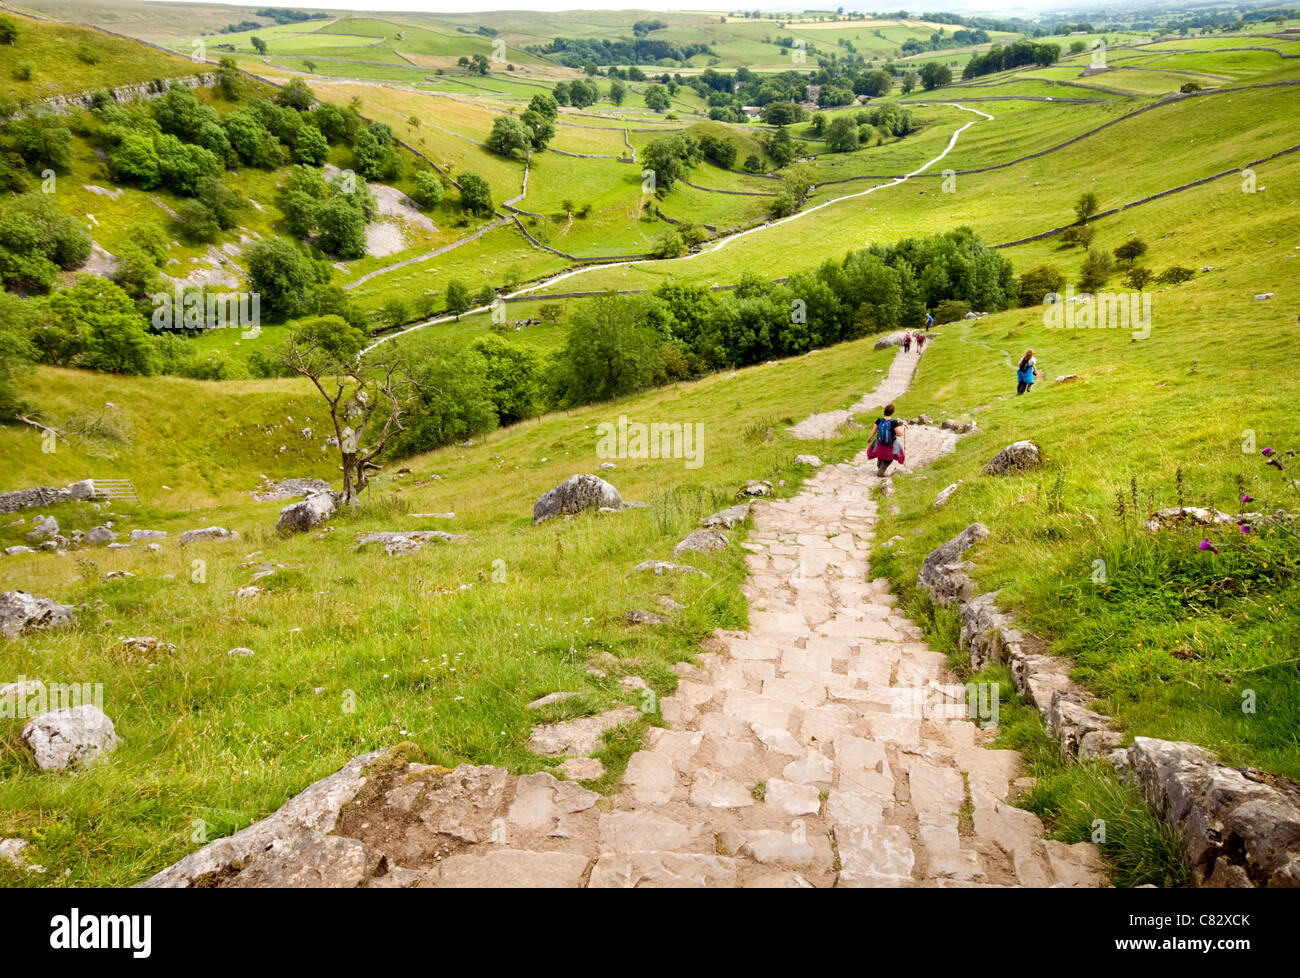 Walkers making their way down the path leading up to the limestone pavement above Malham Cove in the Yorkshire Dales, - Stock Image